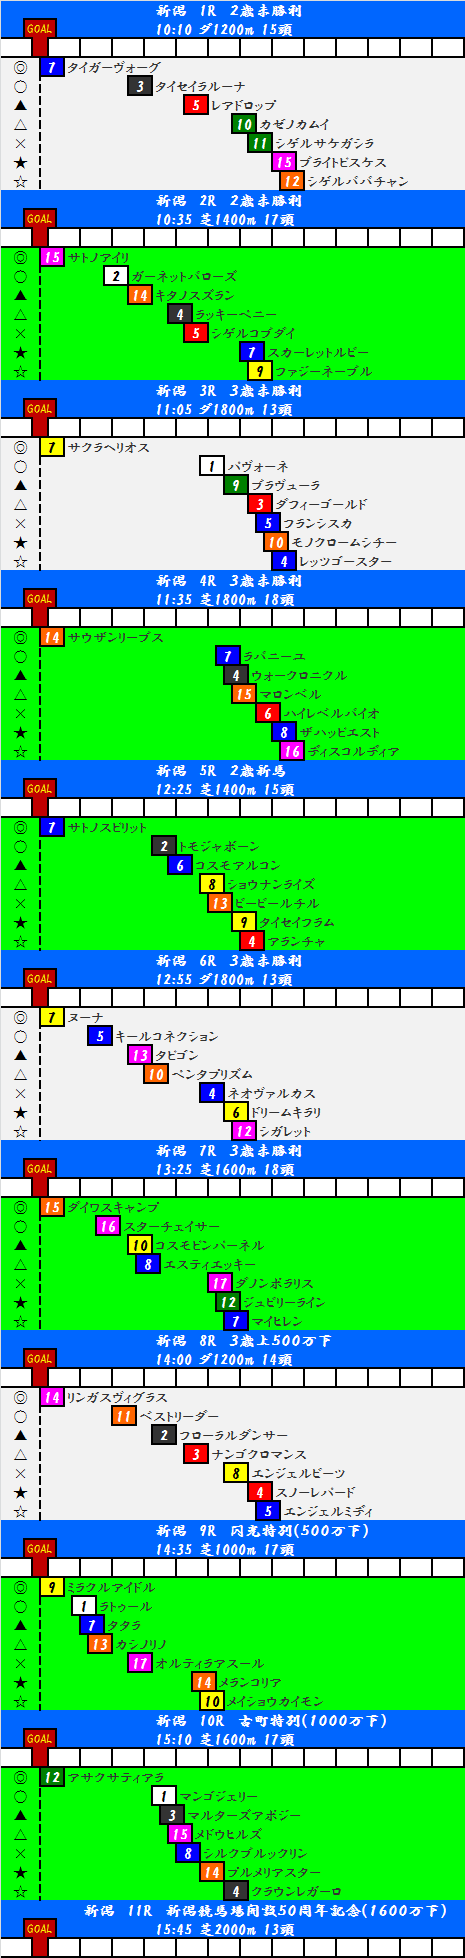 2015080101.png